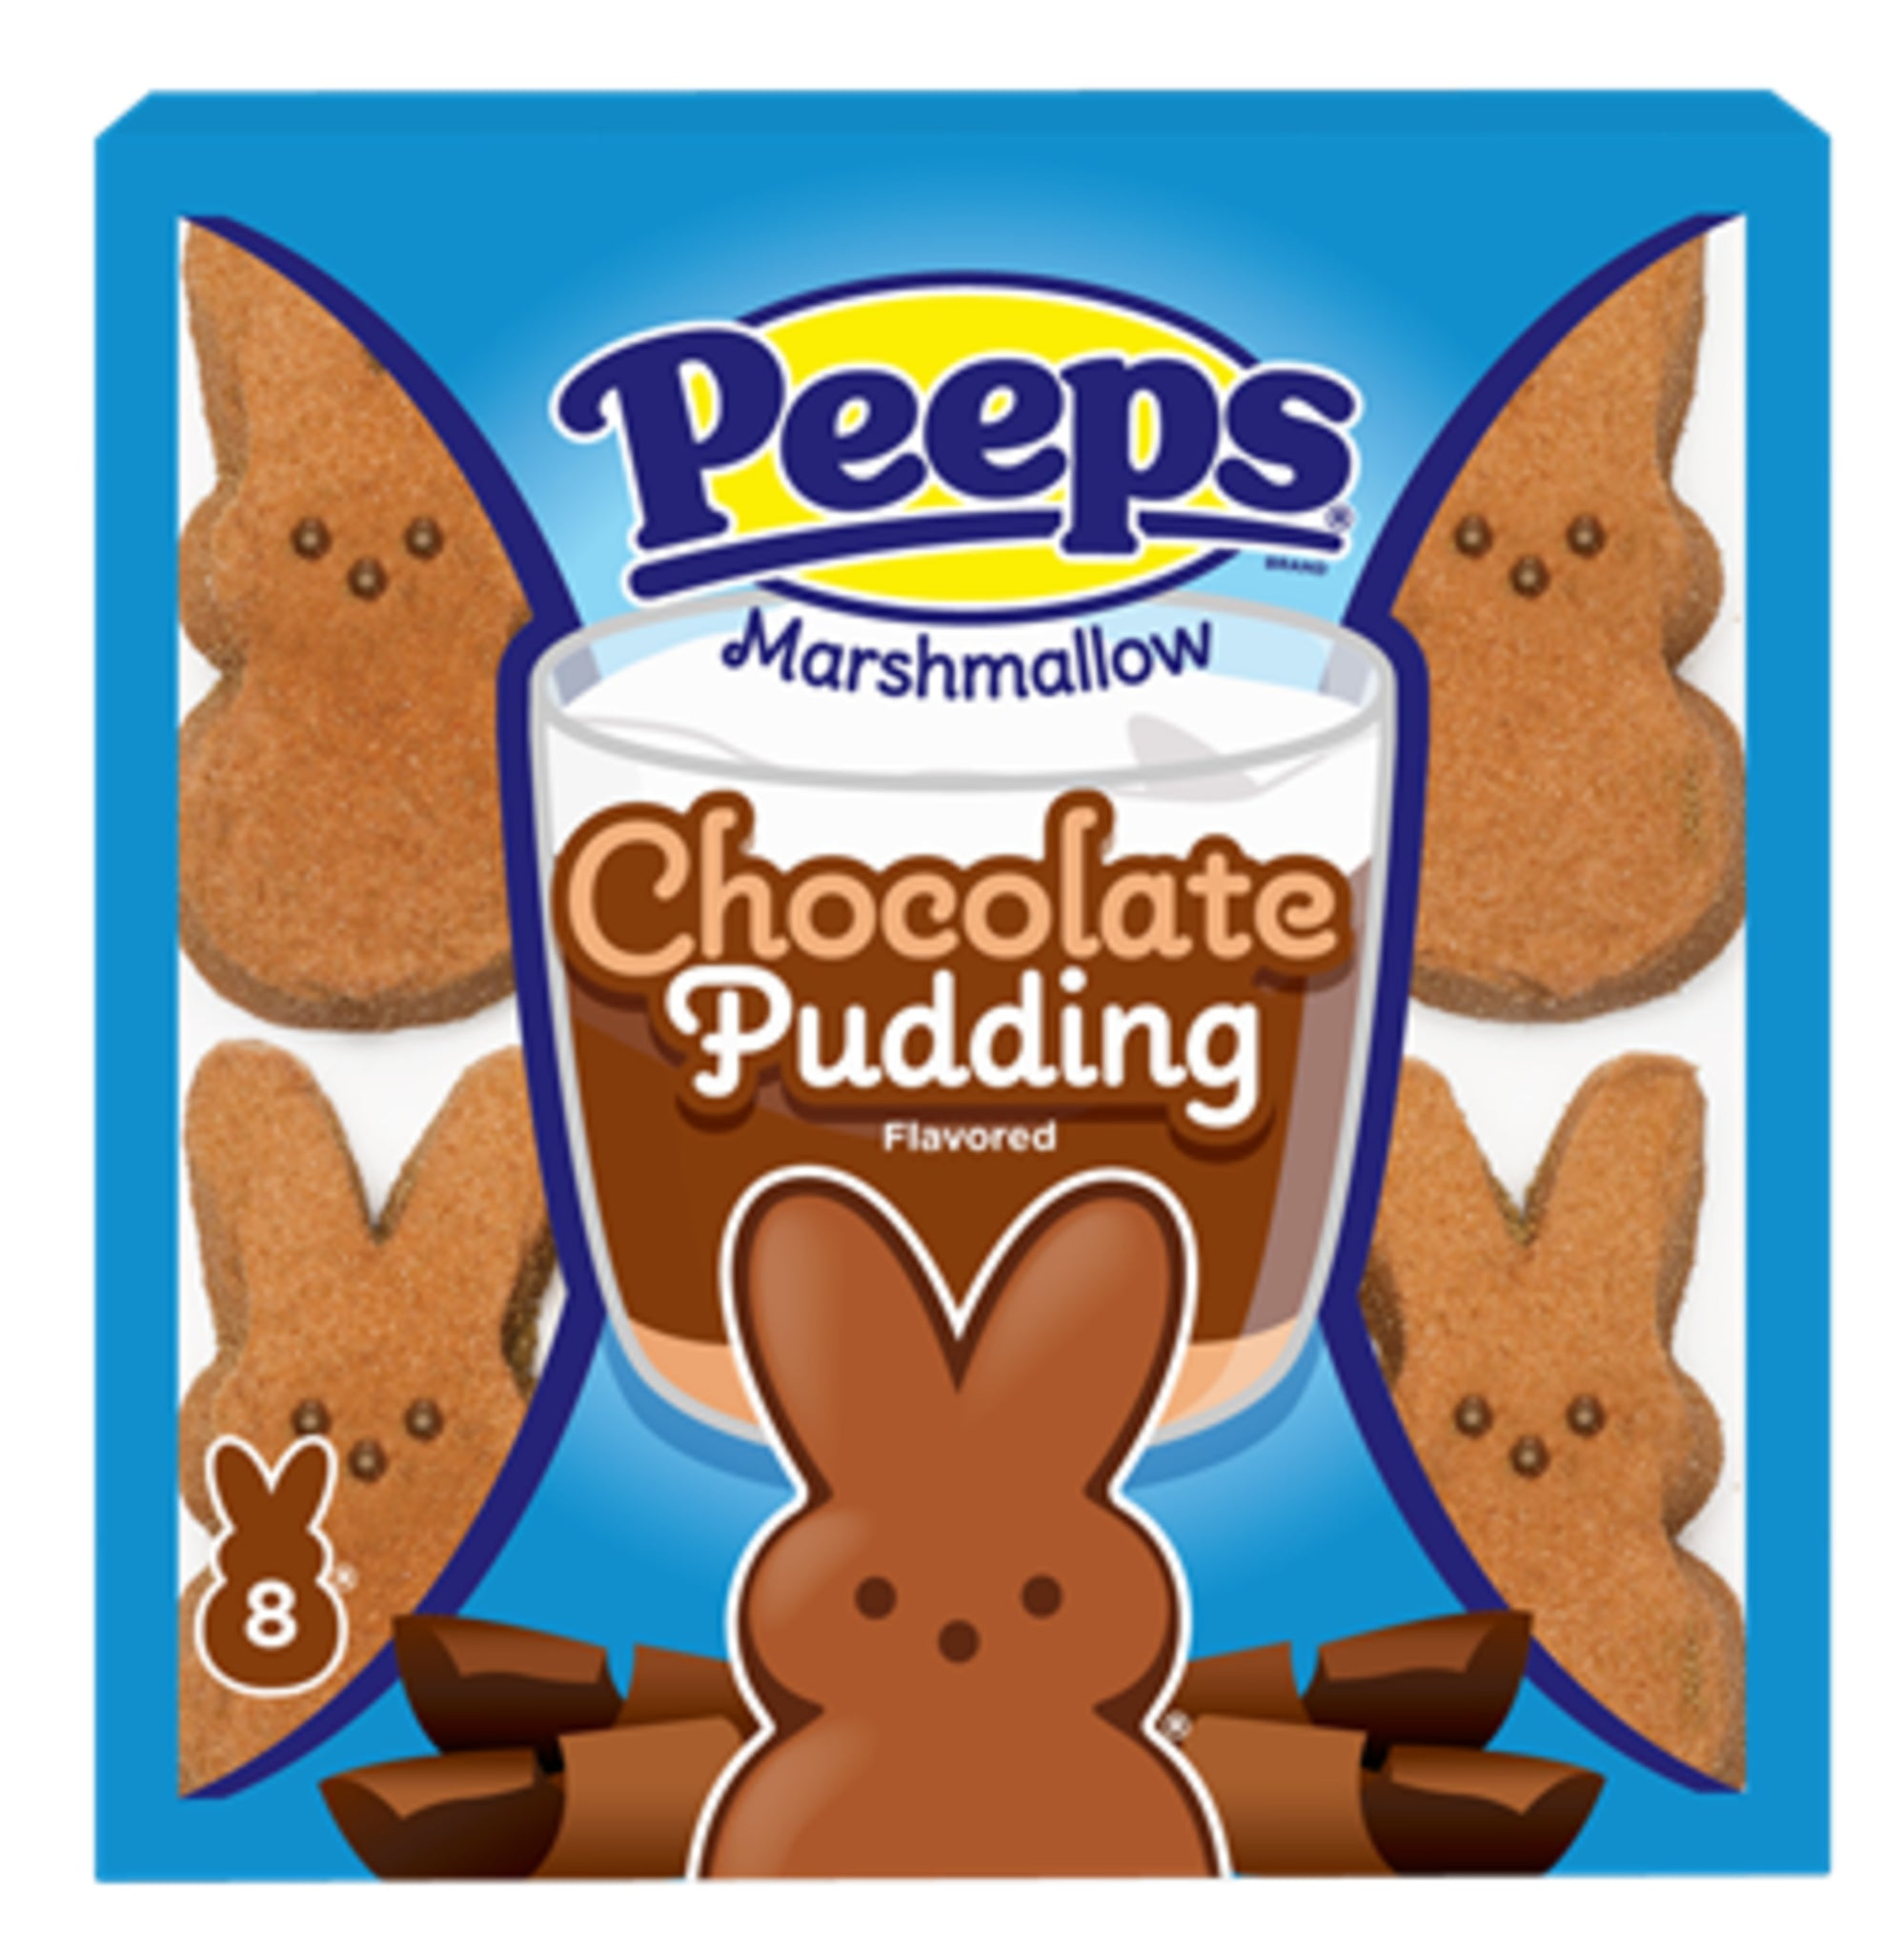 Peeps Marshmallow Chocolate Pudding Bunnies, 8ct, 3oz